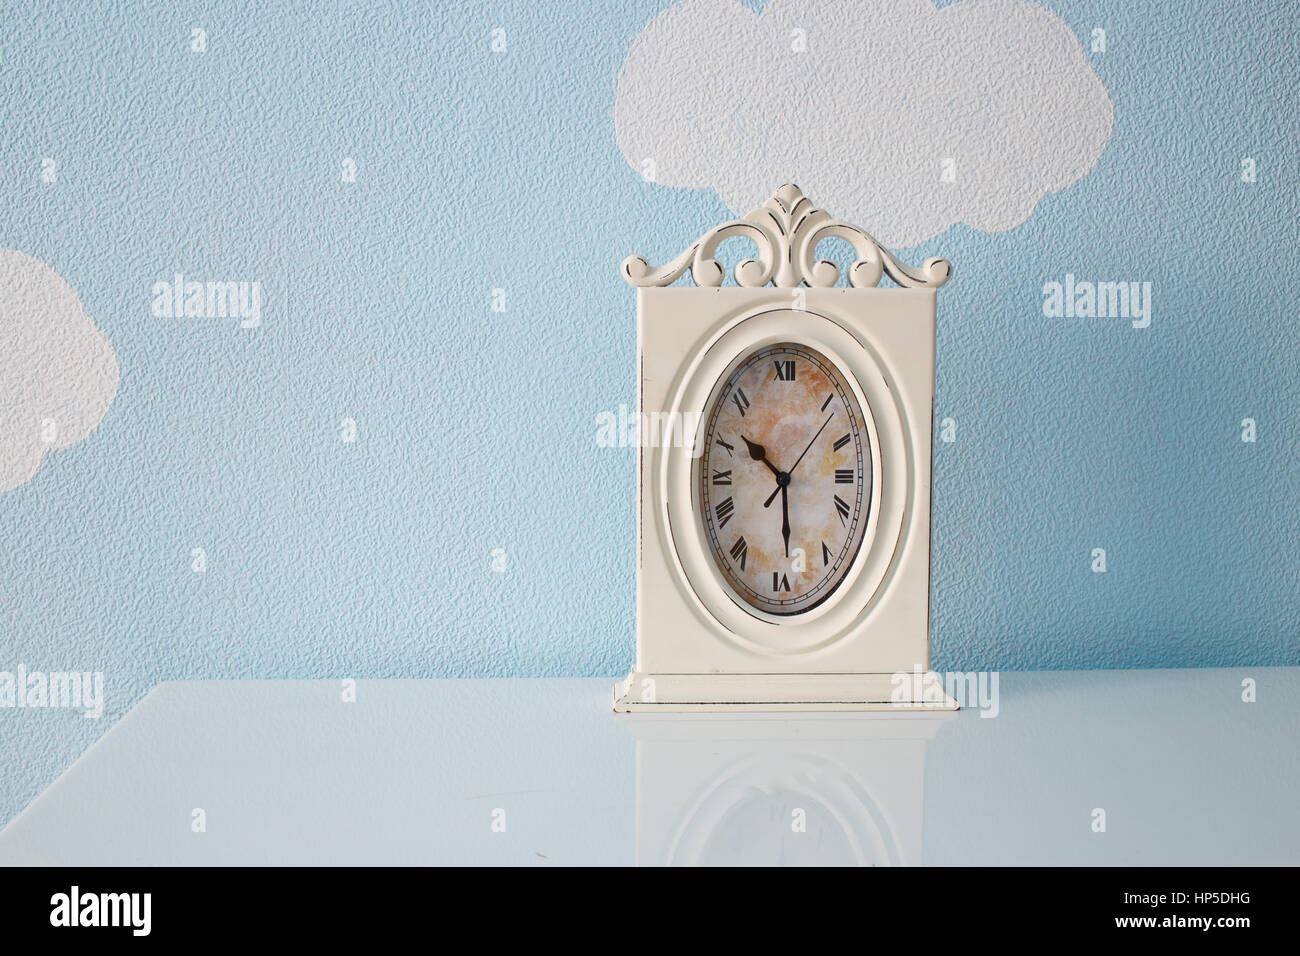 Clock in the nursery room. - Stock Image